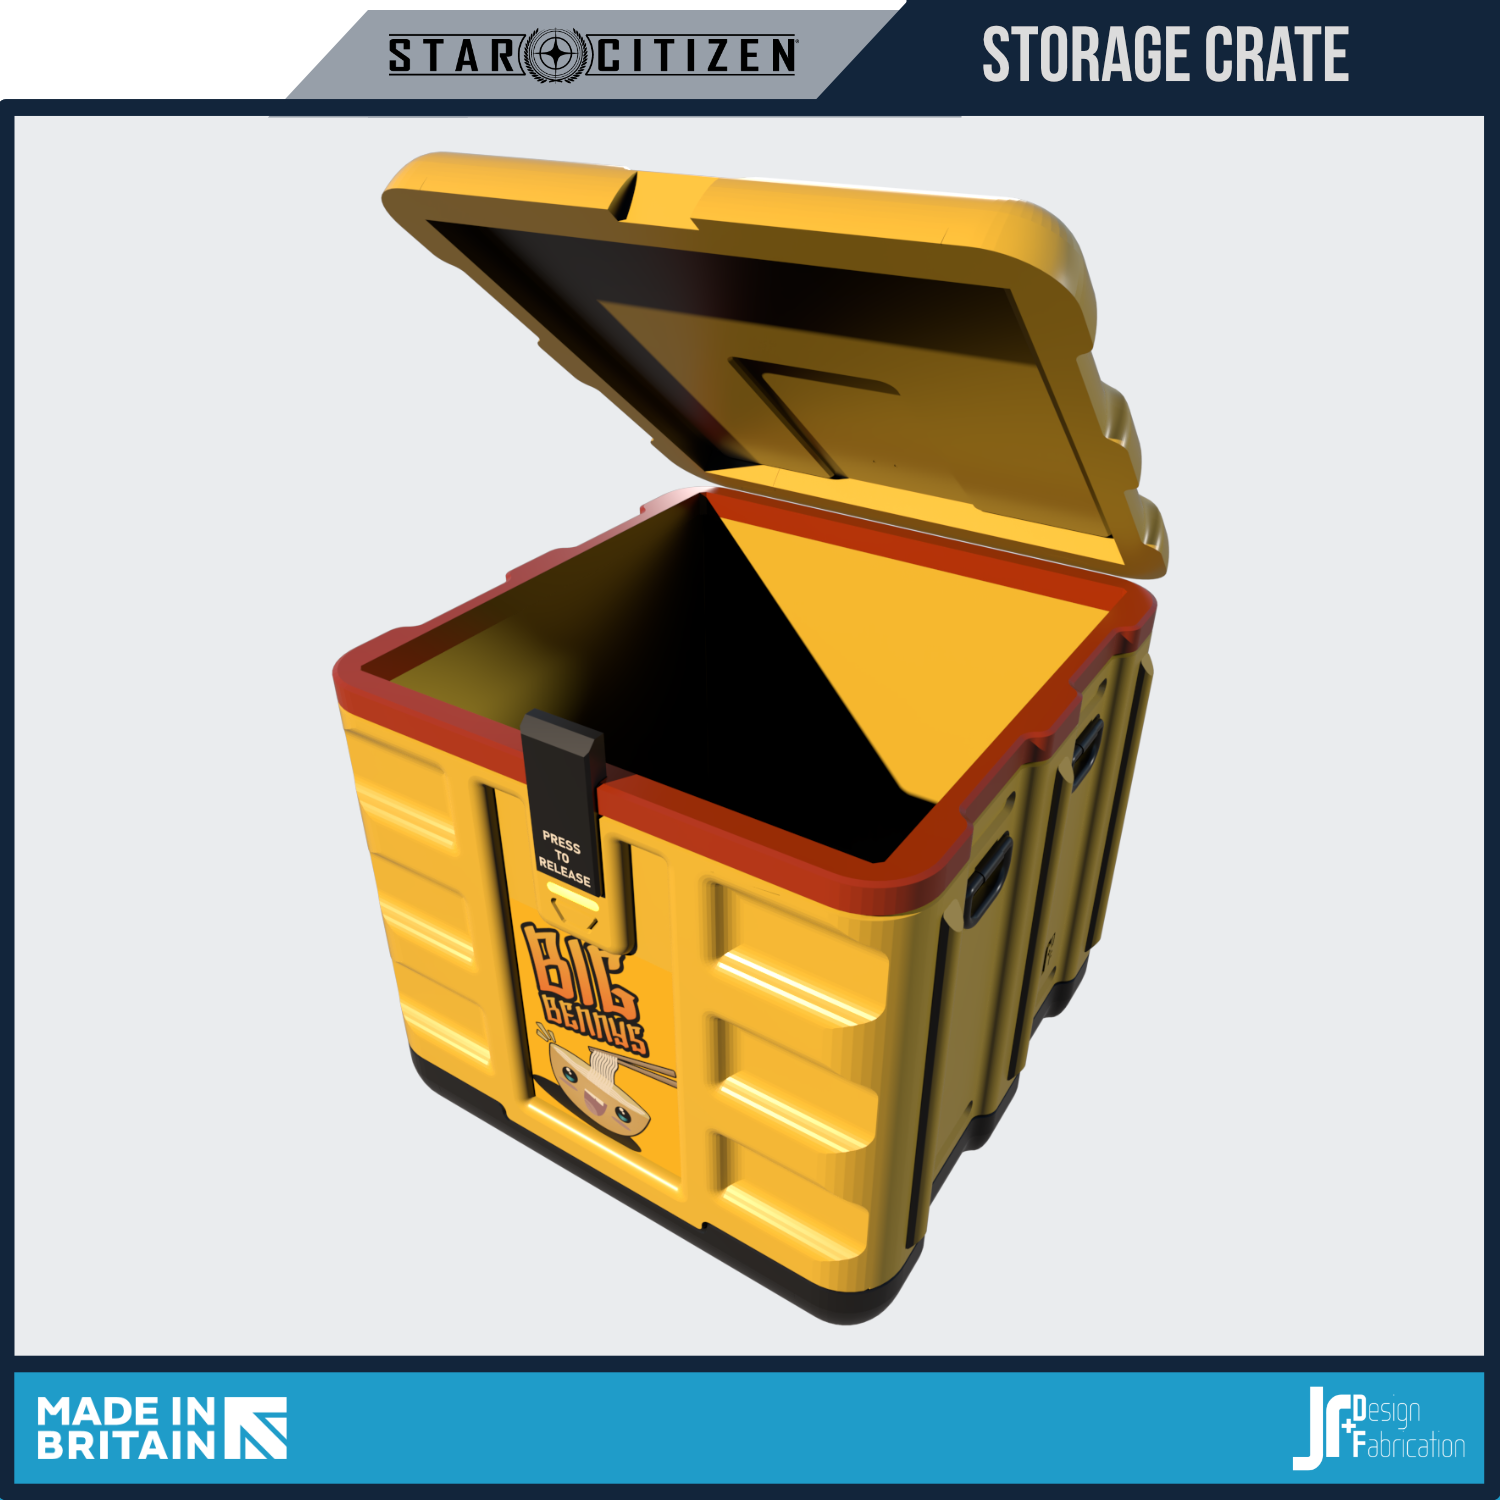 Storage crate image 01.png